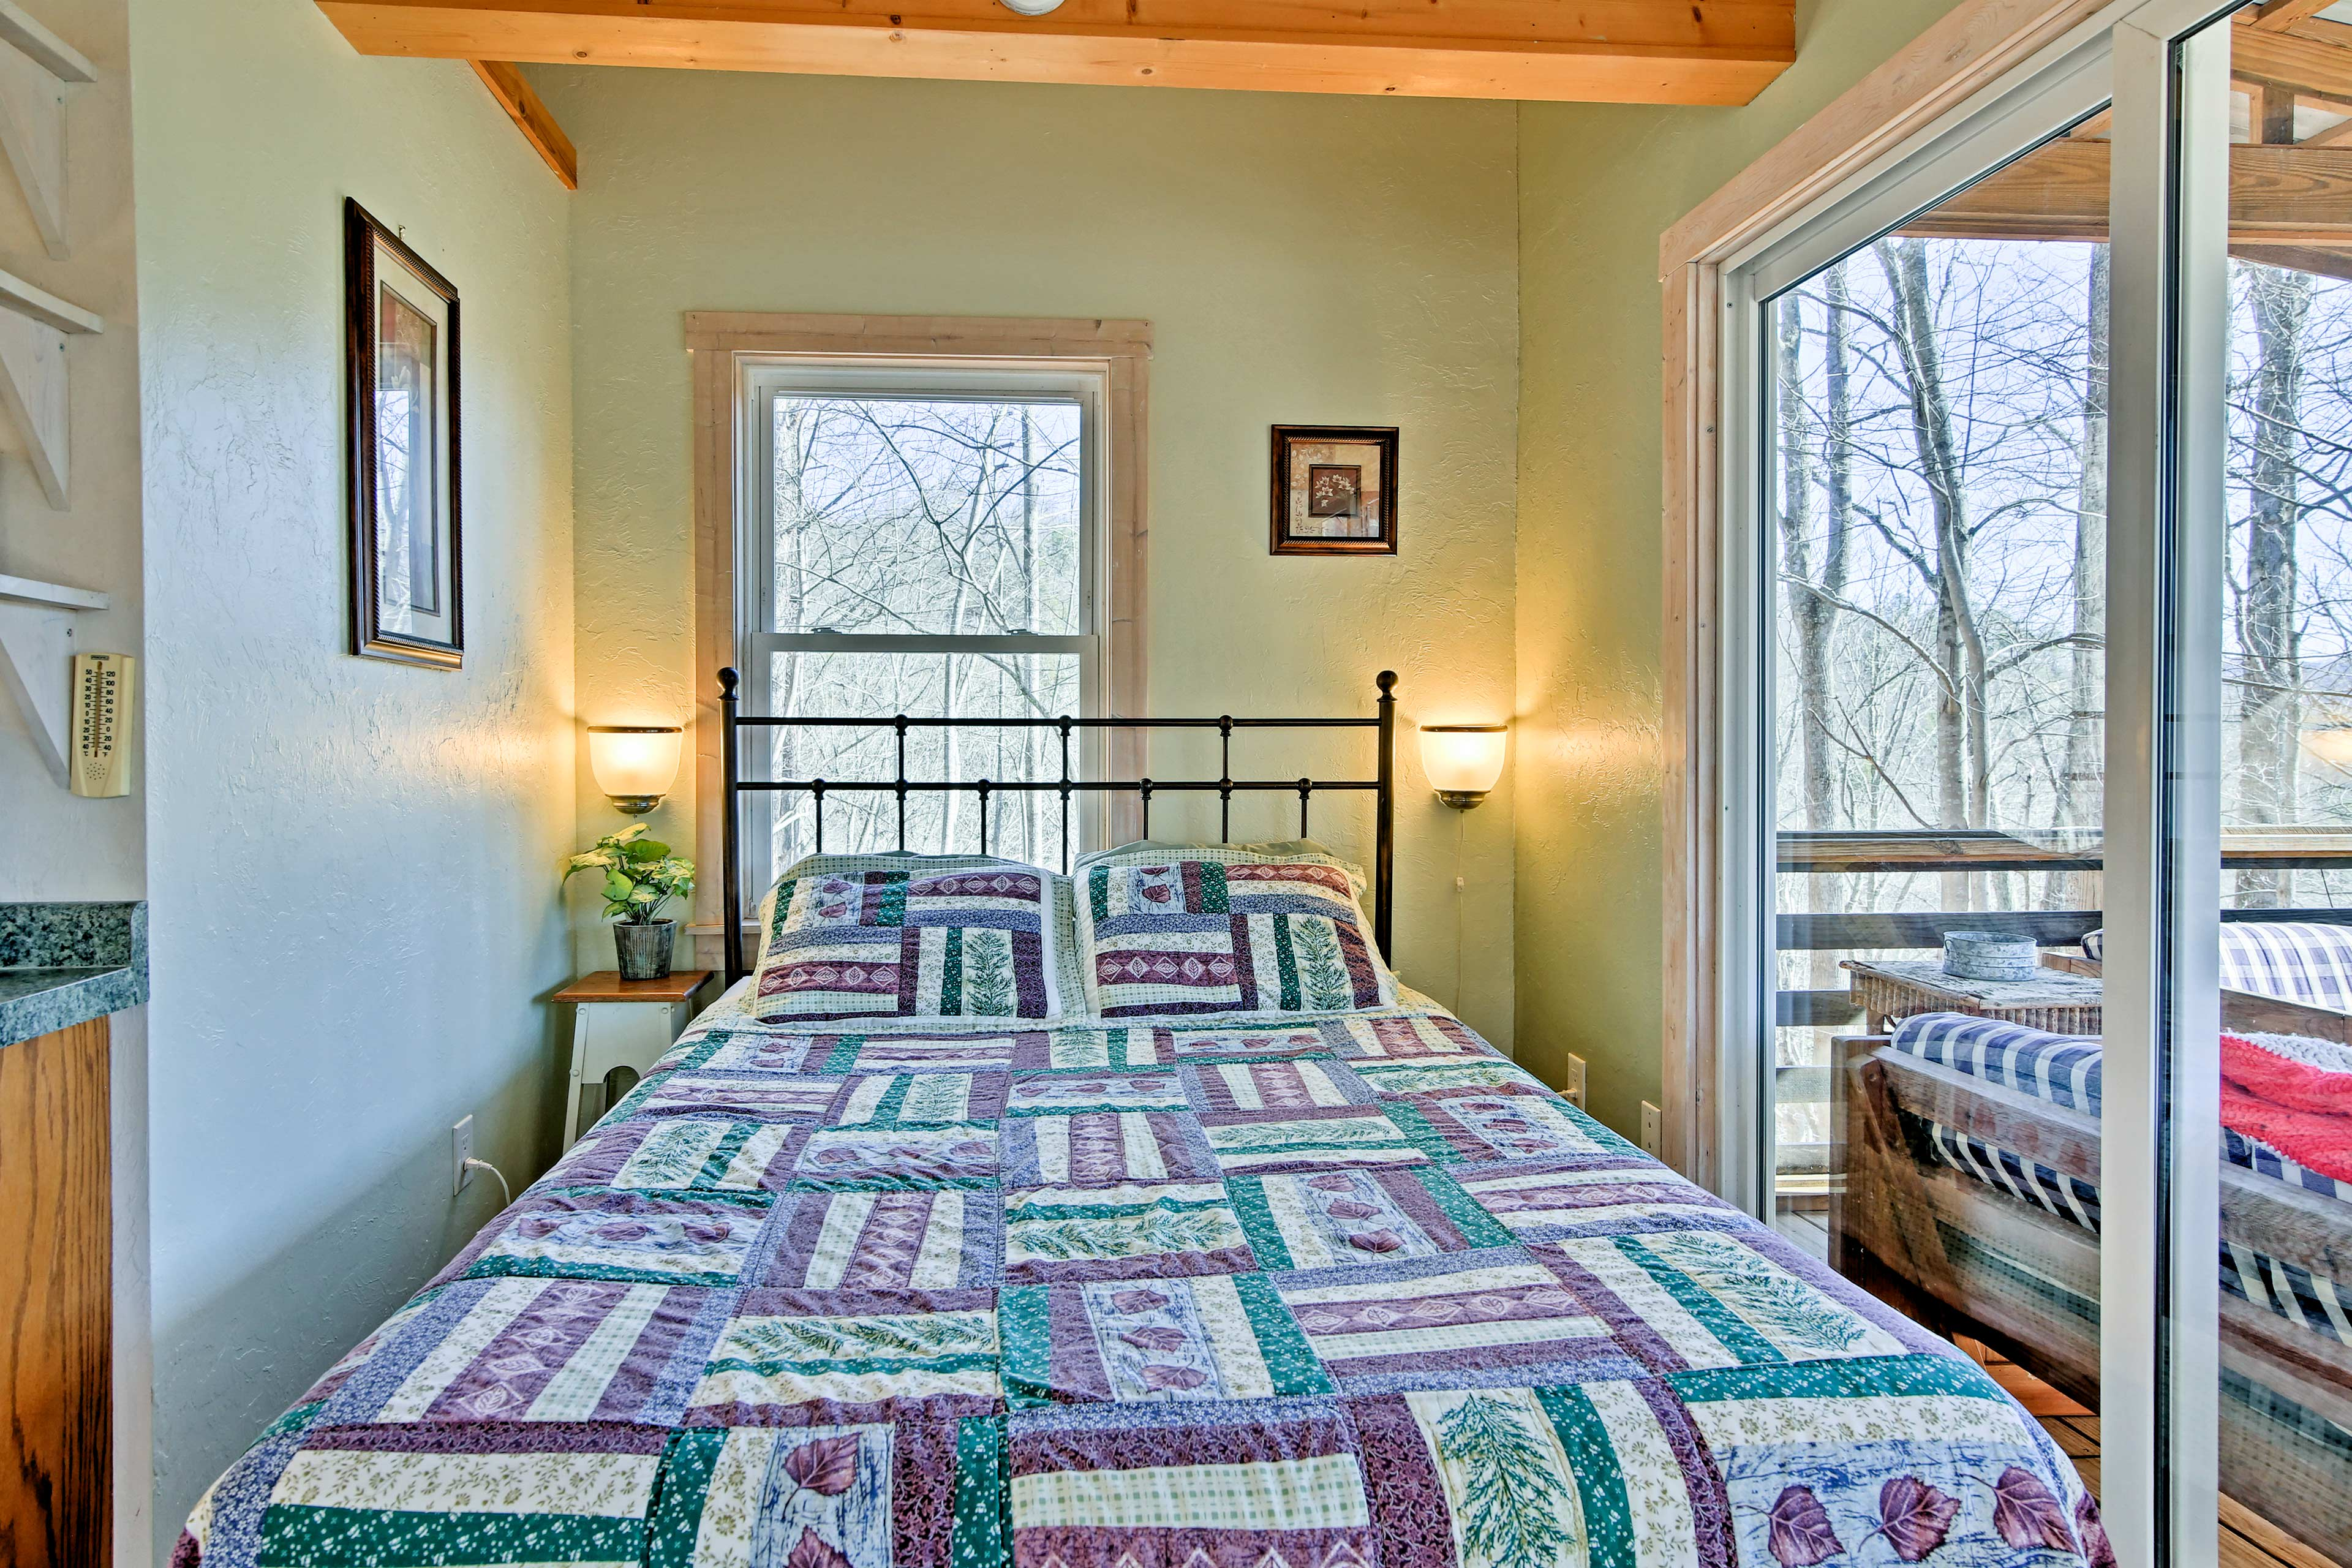 Crawl into the queen bed for a peaceful slumber.